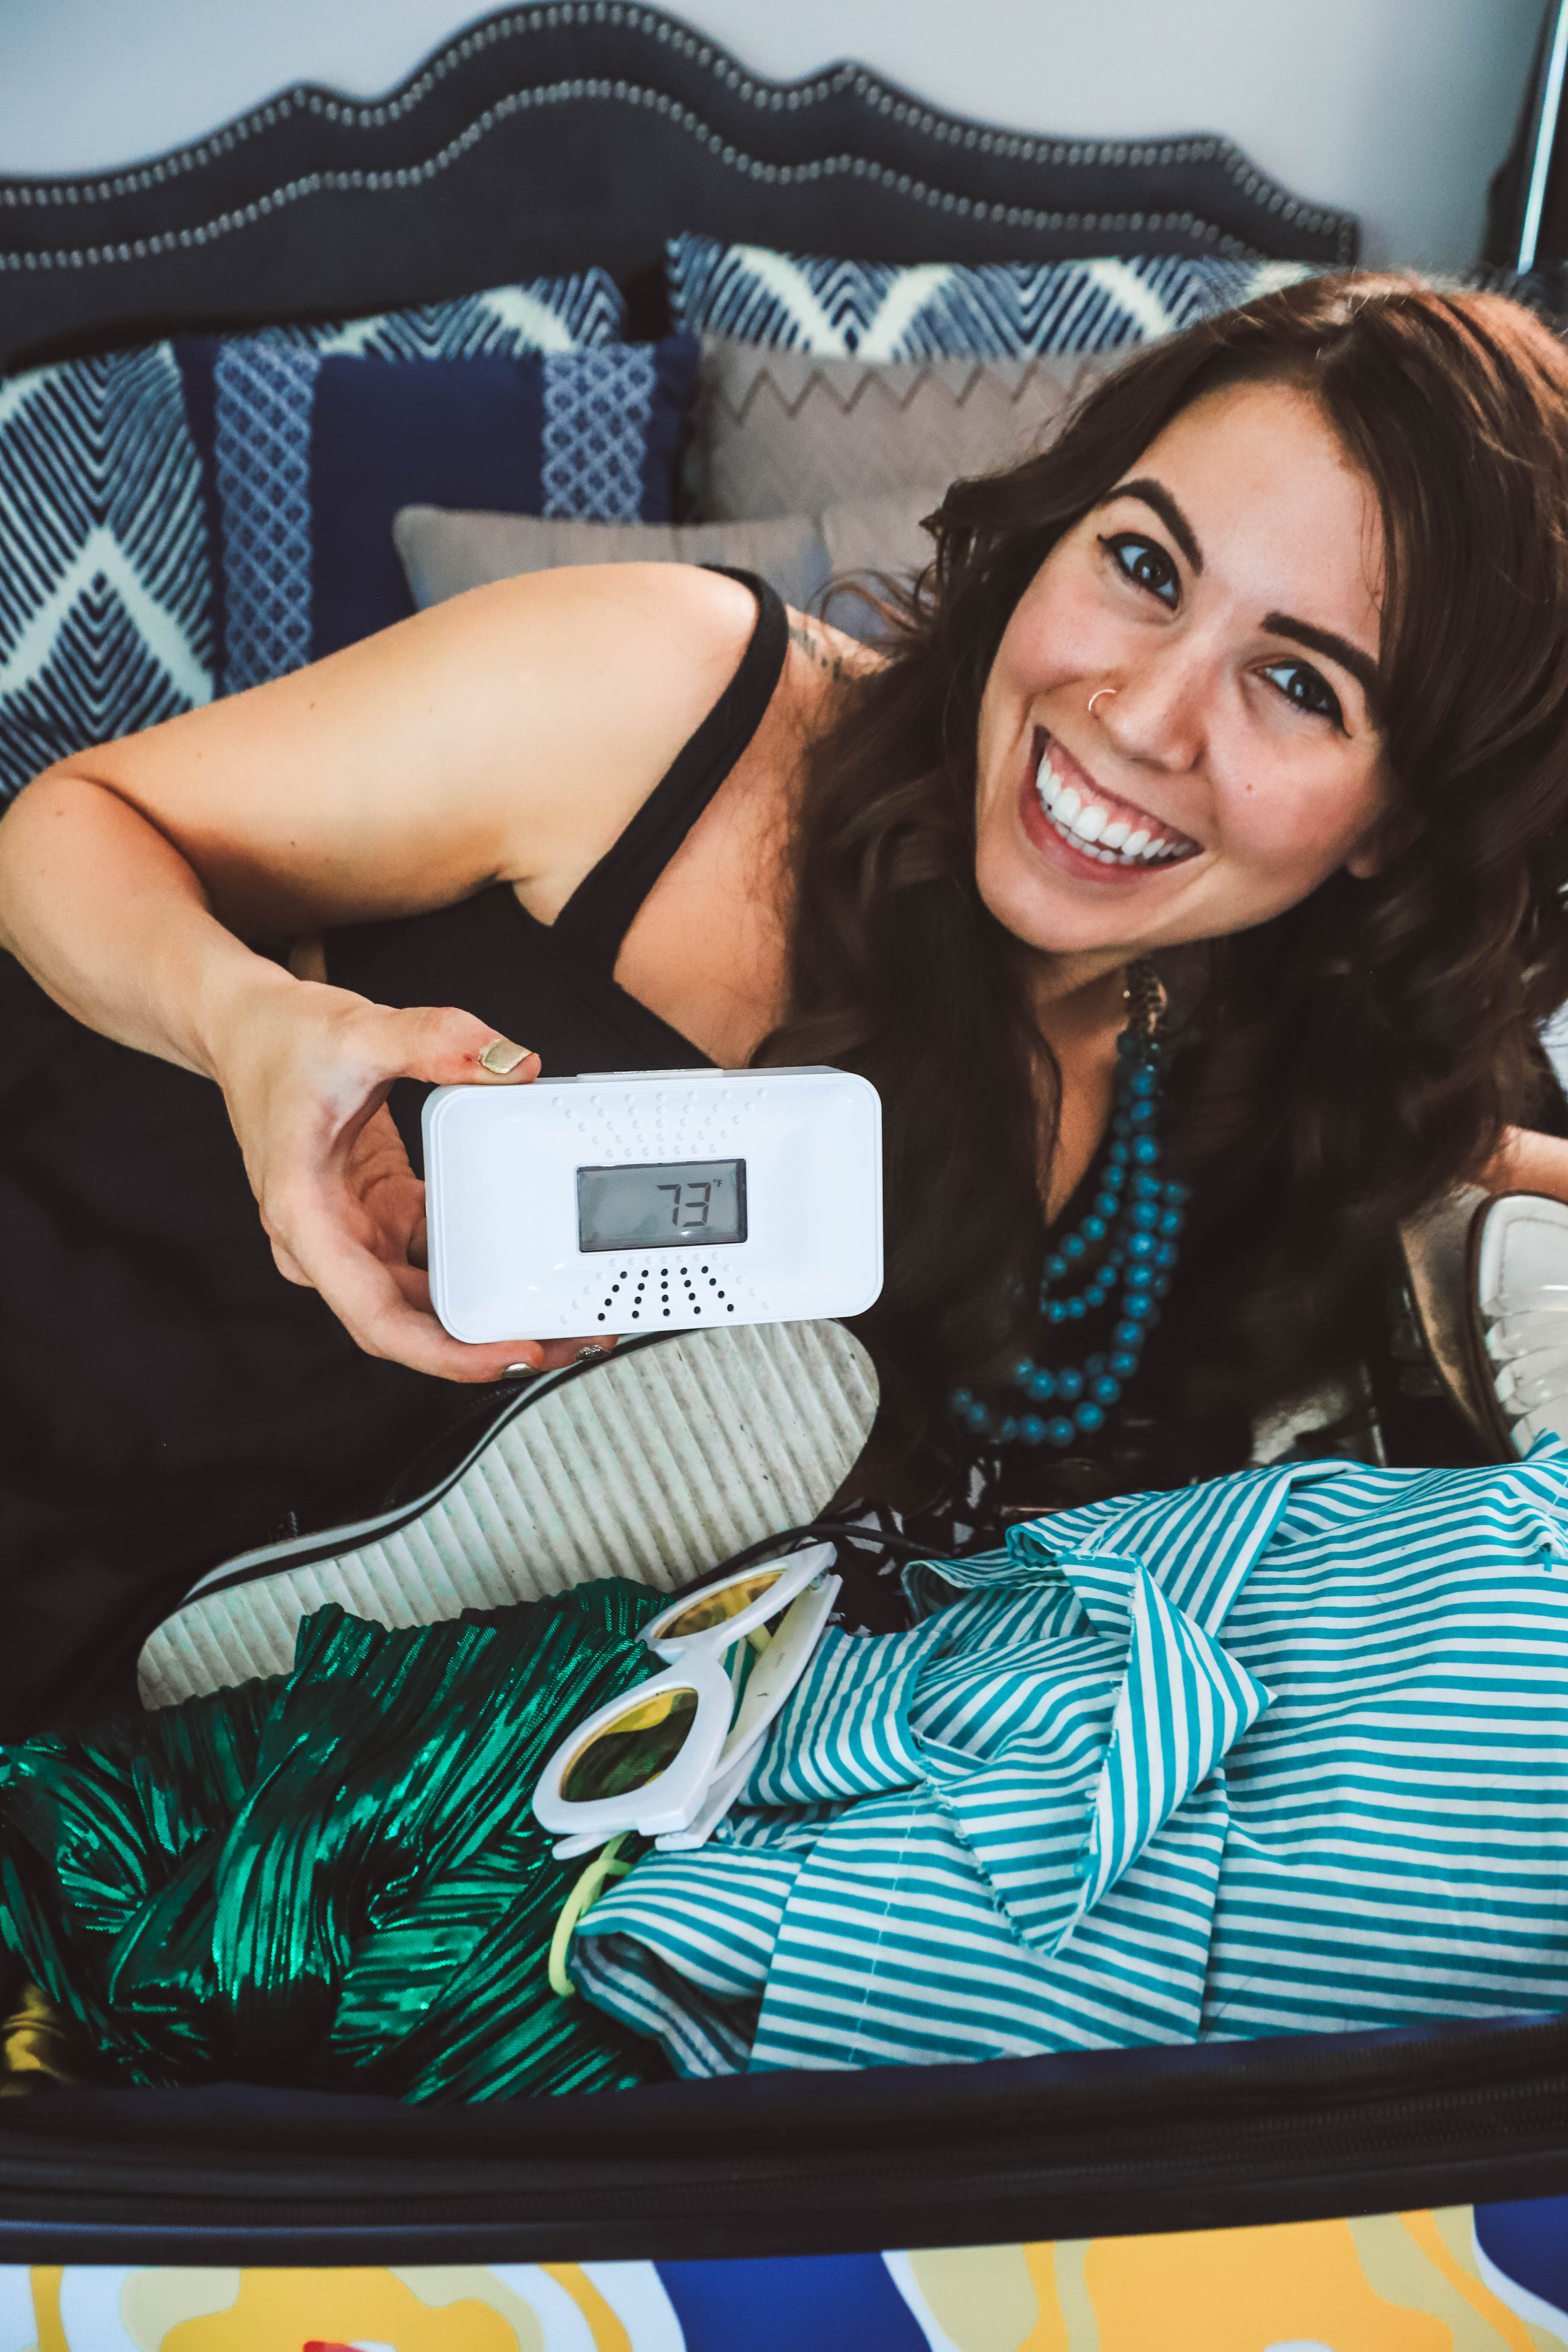 The One Thing I'm Packing for My End of Summer Vacation? My First Alert CO Alarm! by popular Nashville life and style blogger, Greta Hollar: image of a woman sitting on her bed and holding a First Alert CO alarm in her hand.